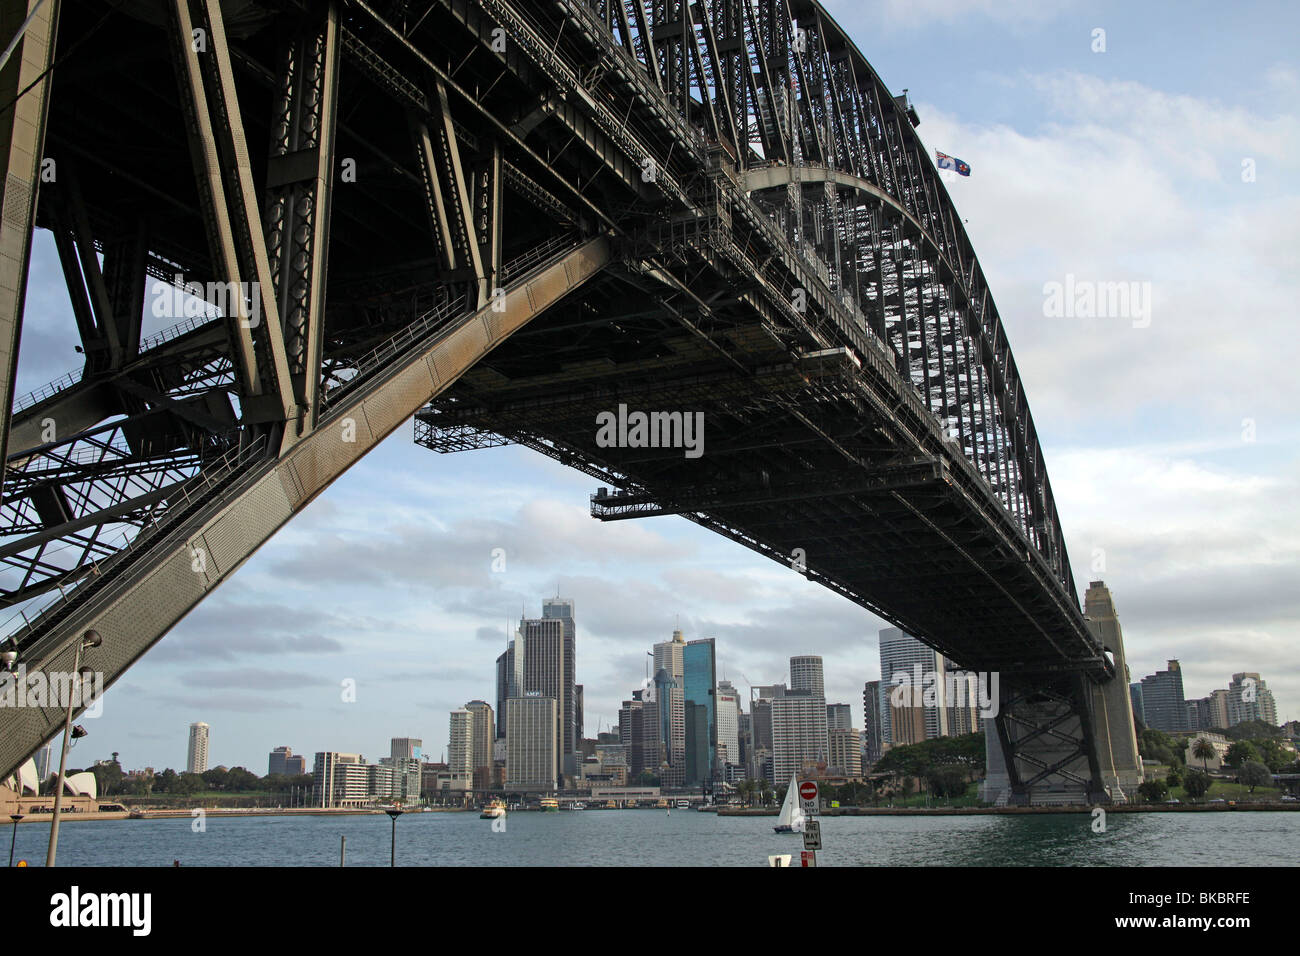 Sydney Harbour Bridge and Skyline in Sydney, New South Wales, Australia - Stock Image